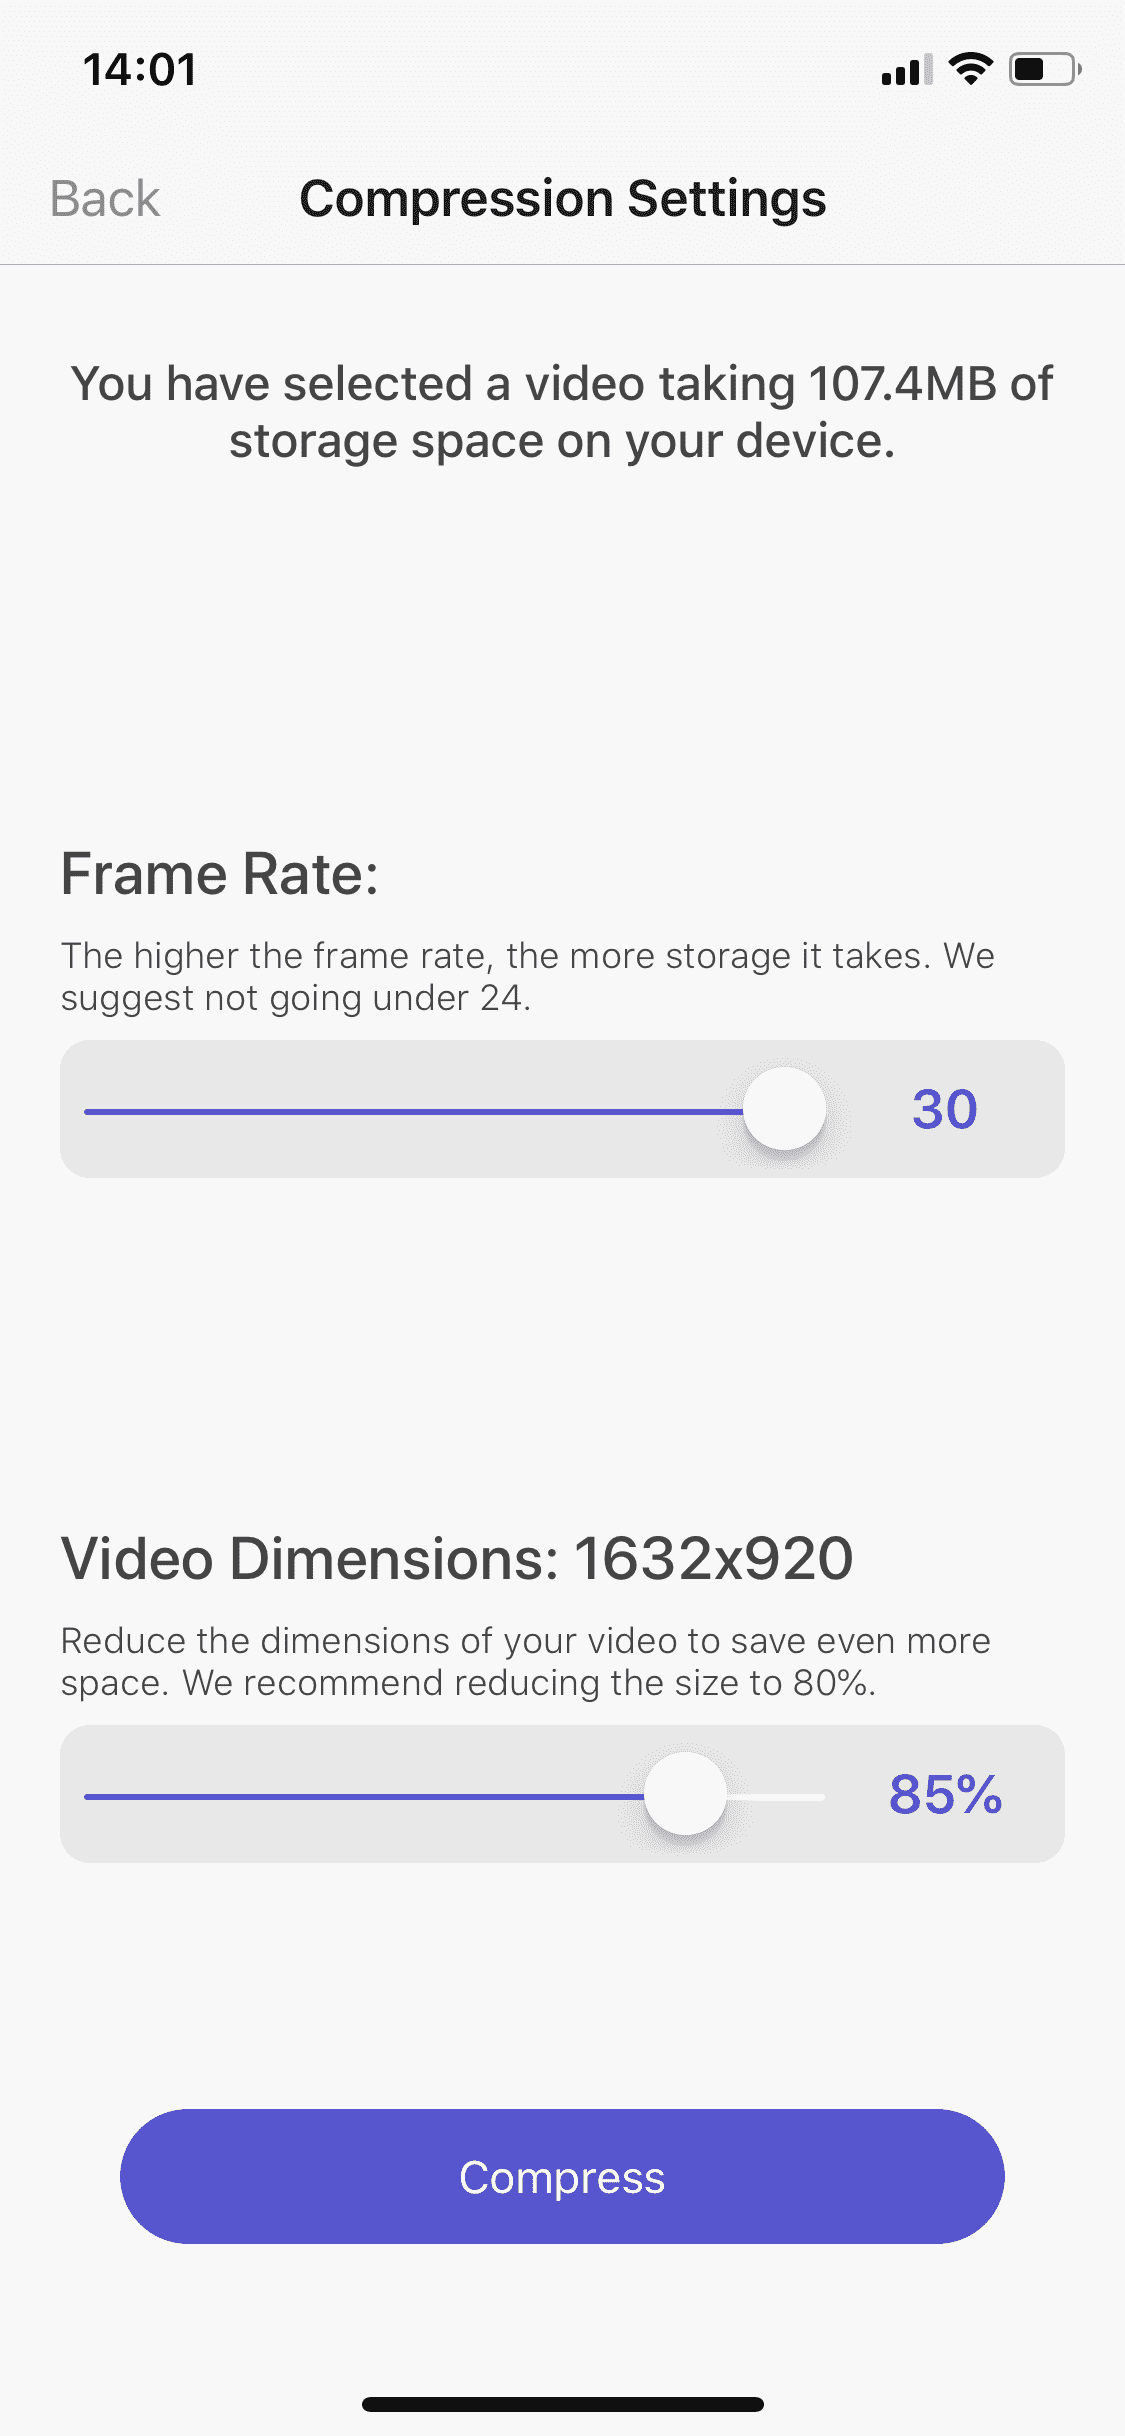 Shrink video dimensions